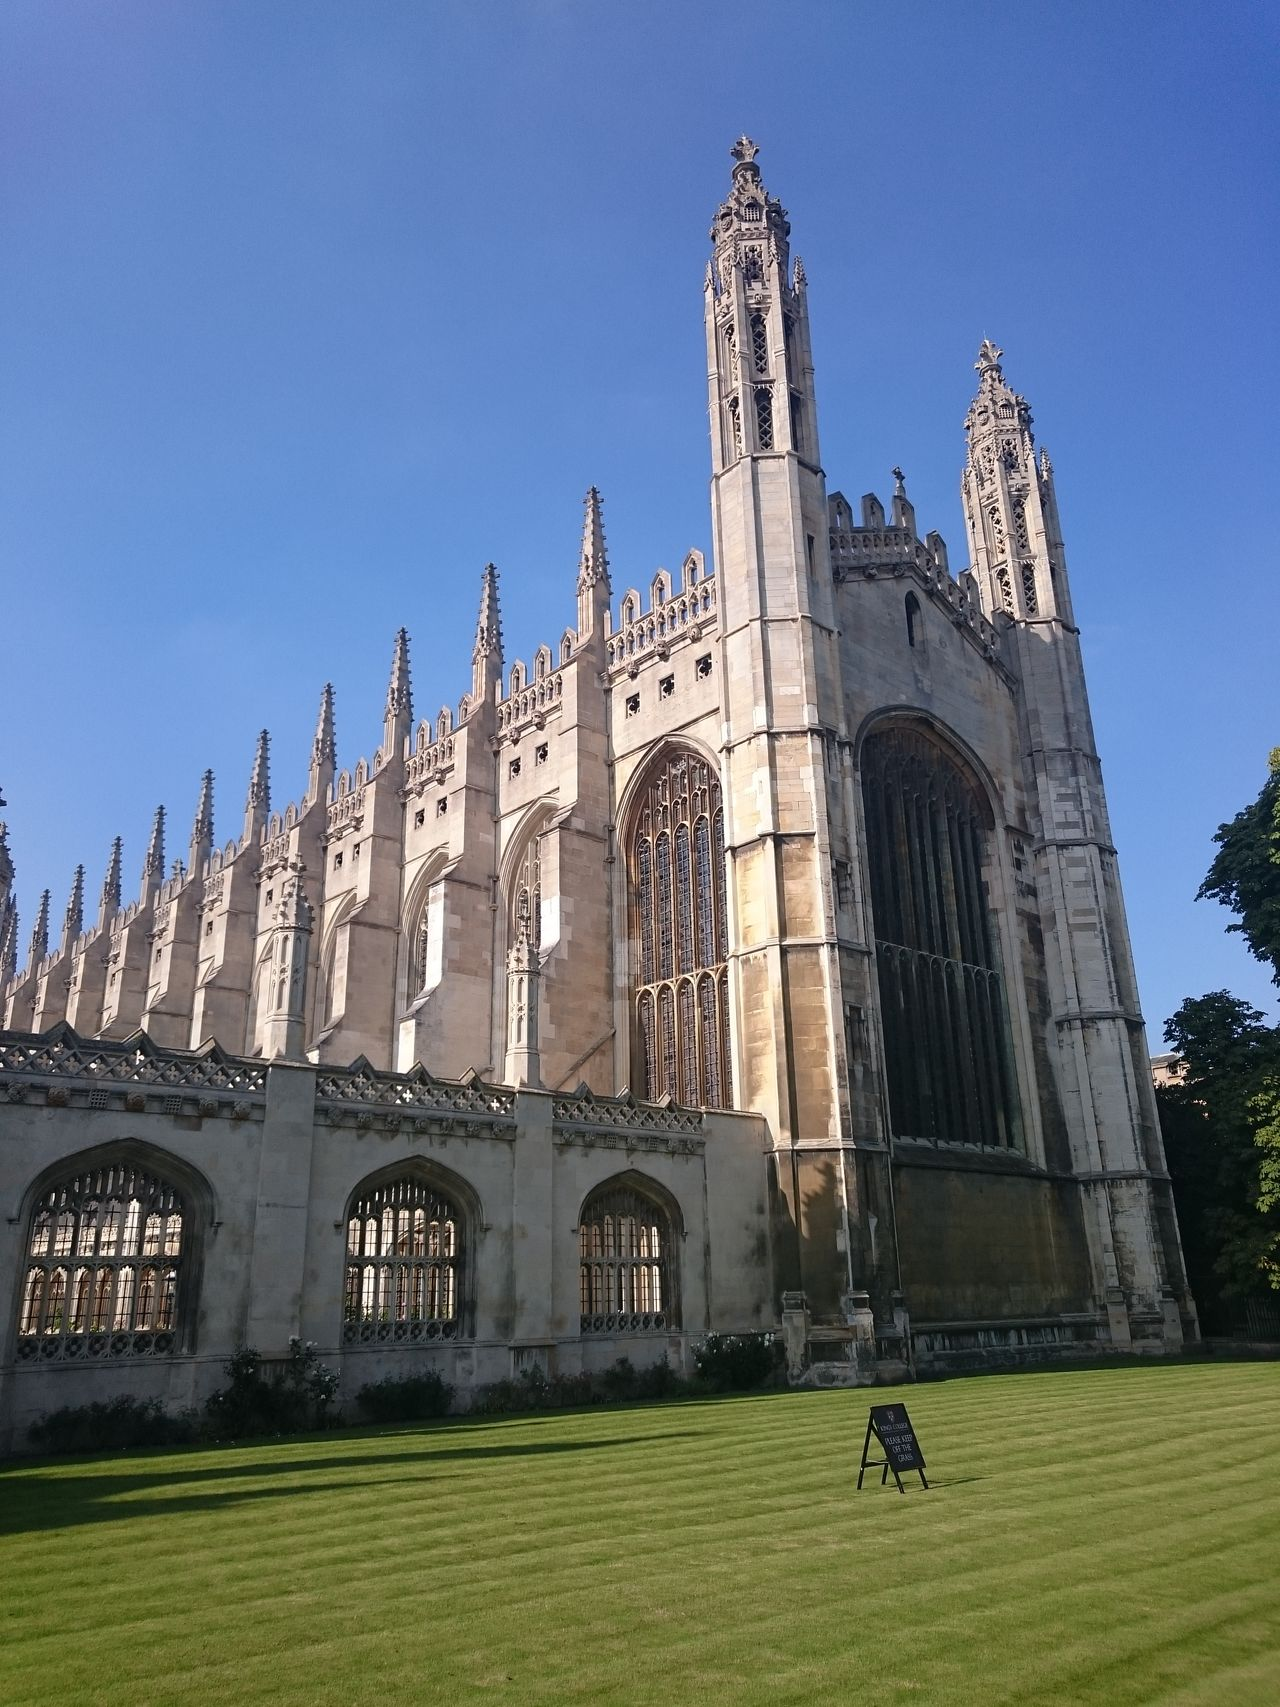 Cultures Travel Destinations Tower Architecture Gothic Style Place Of Worship City Outdoors No People Clock Tower Sky Day Kings College Cambridge Urban Geometry Culture And Tradition University Campus Cambridgeshire Beauty In Architecture Architecture Natural Colours